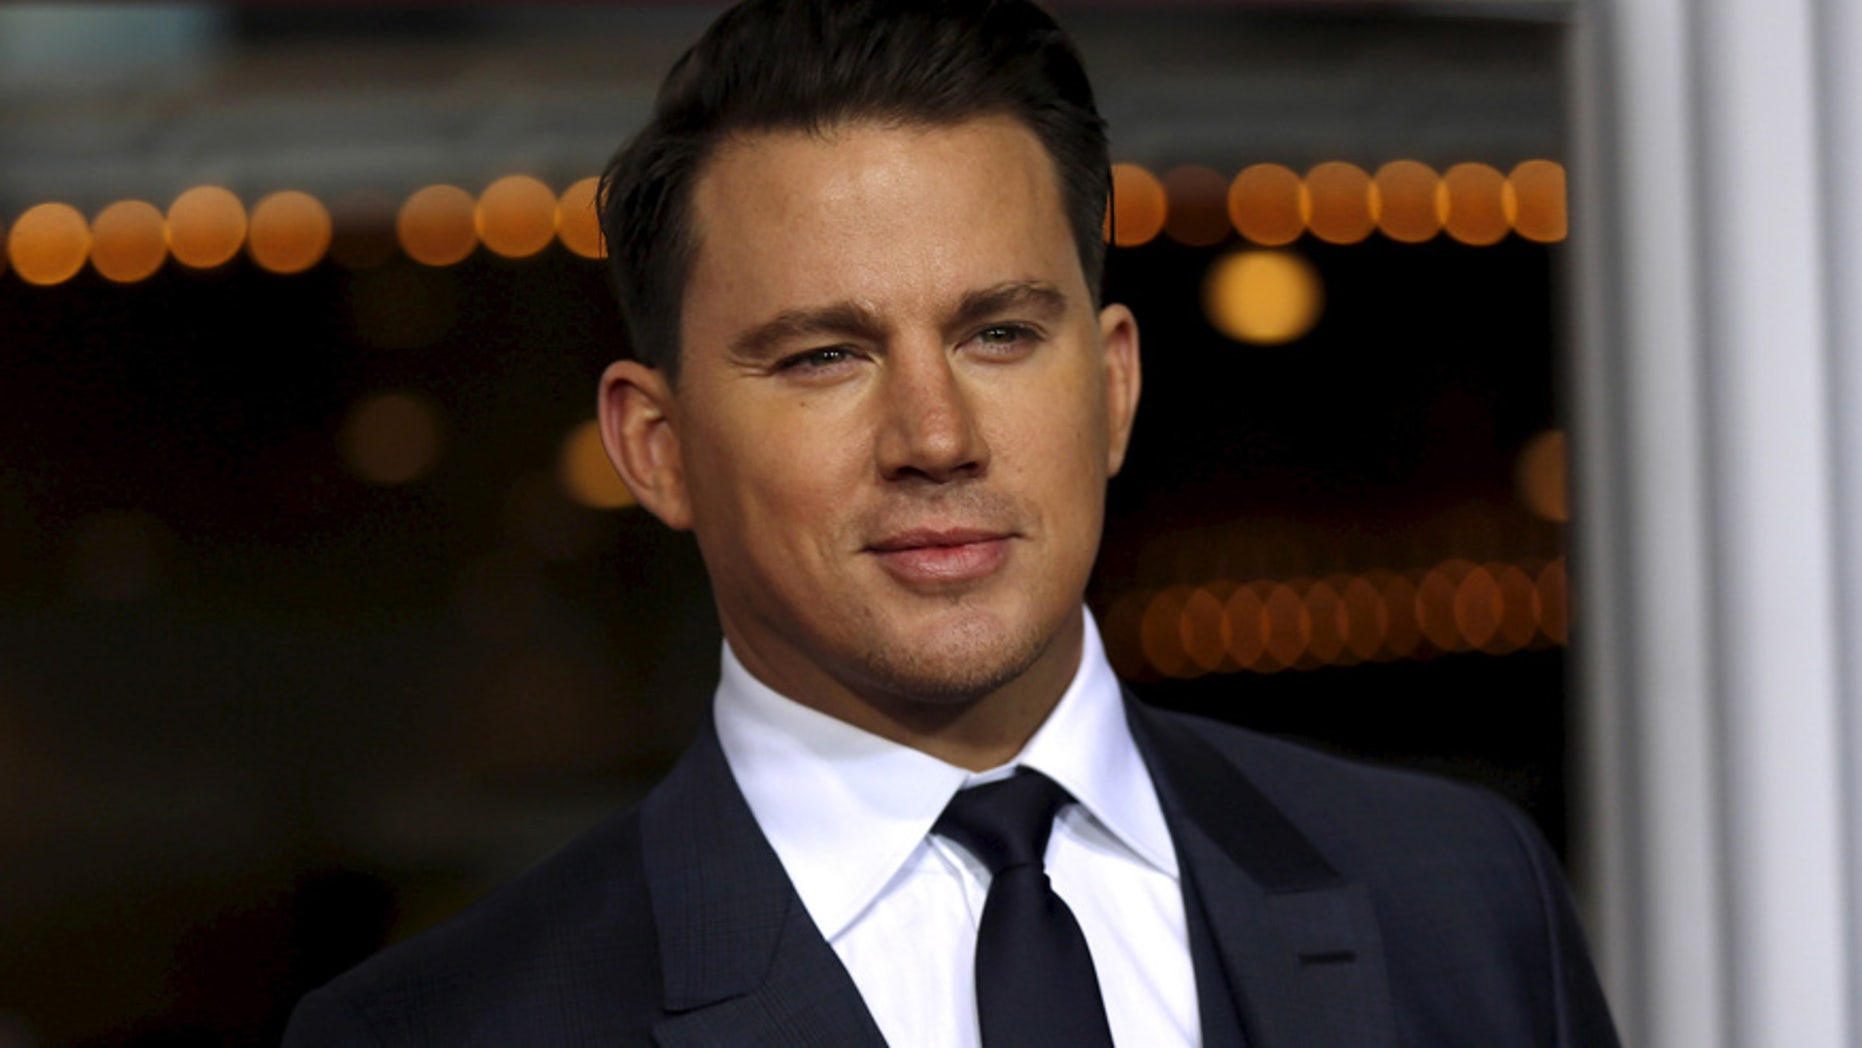 """Channing Tatum arrives for the premiere of """"Hail, Caesar!"""" in Los Angeles, California, on February 1, 2016."""